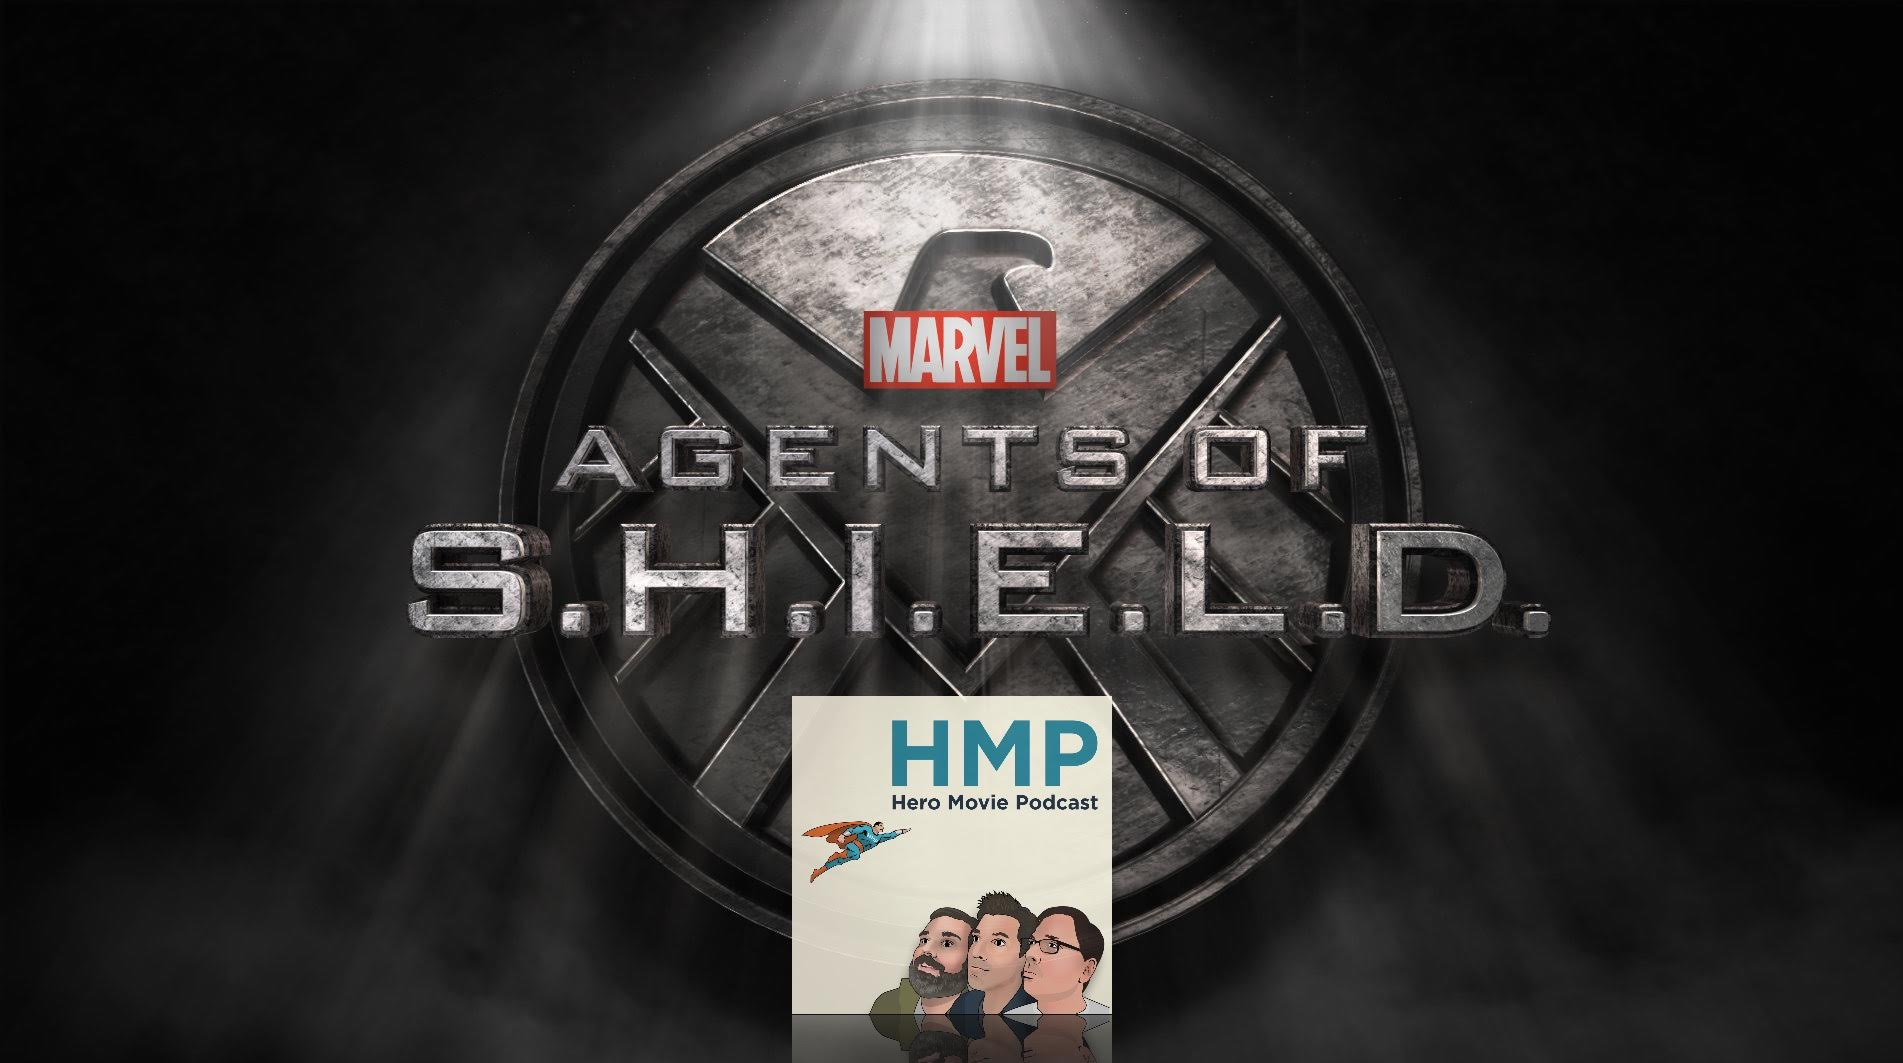 Episode 56- Marvel's Agents of S.H.I.E.L.D.